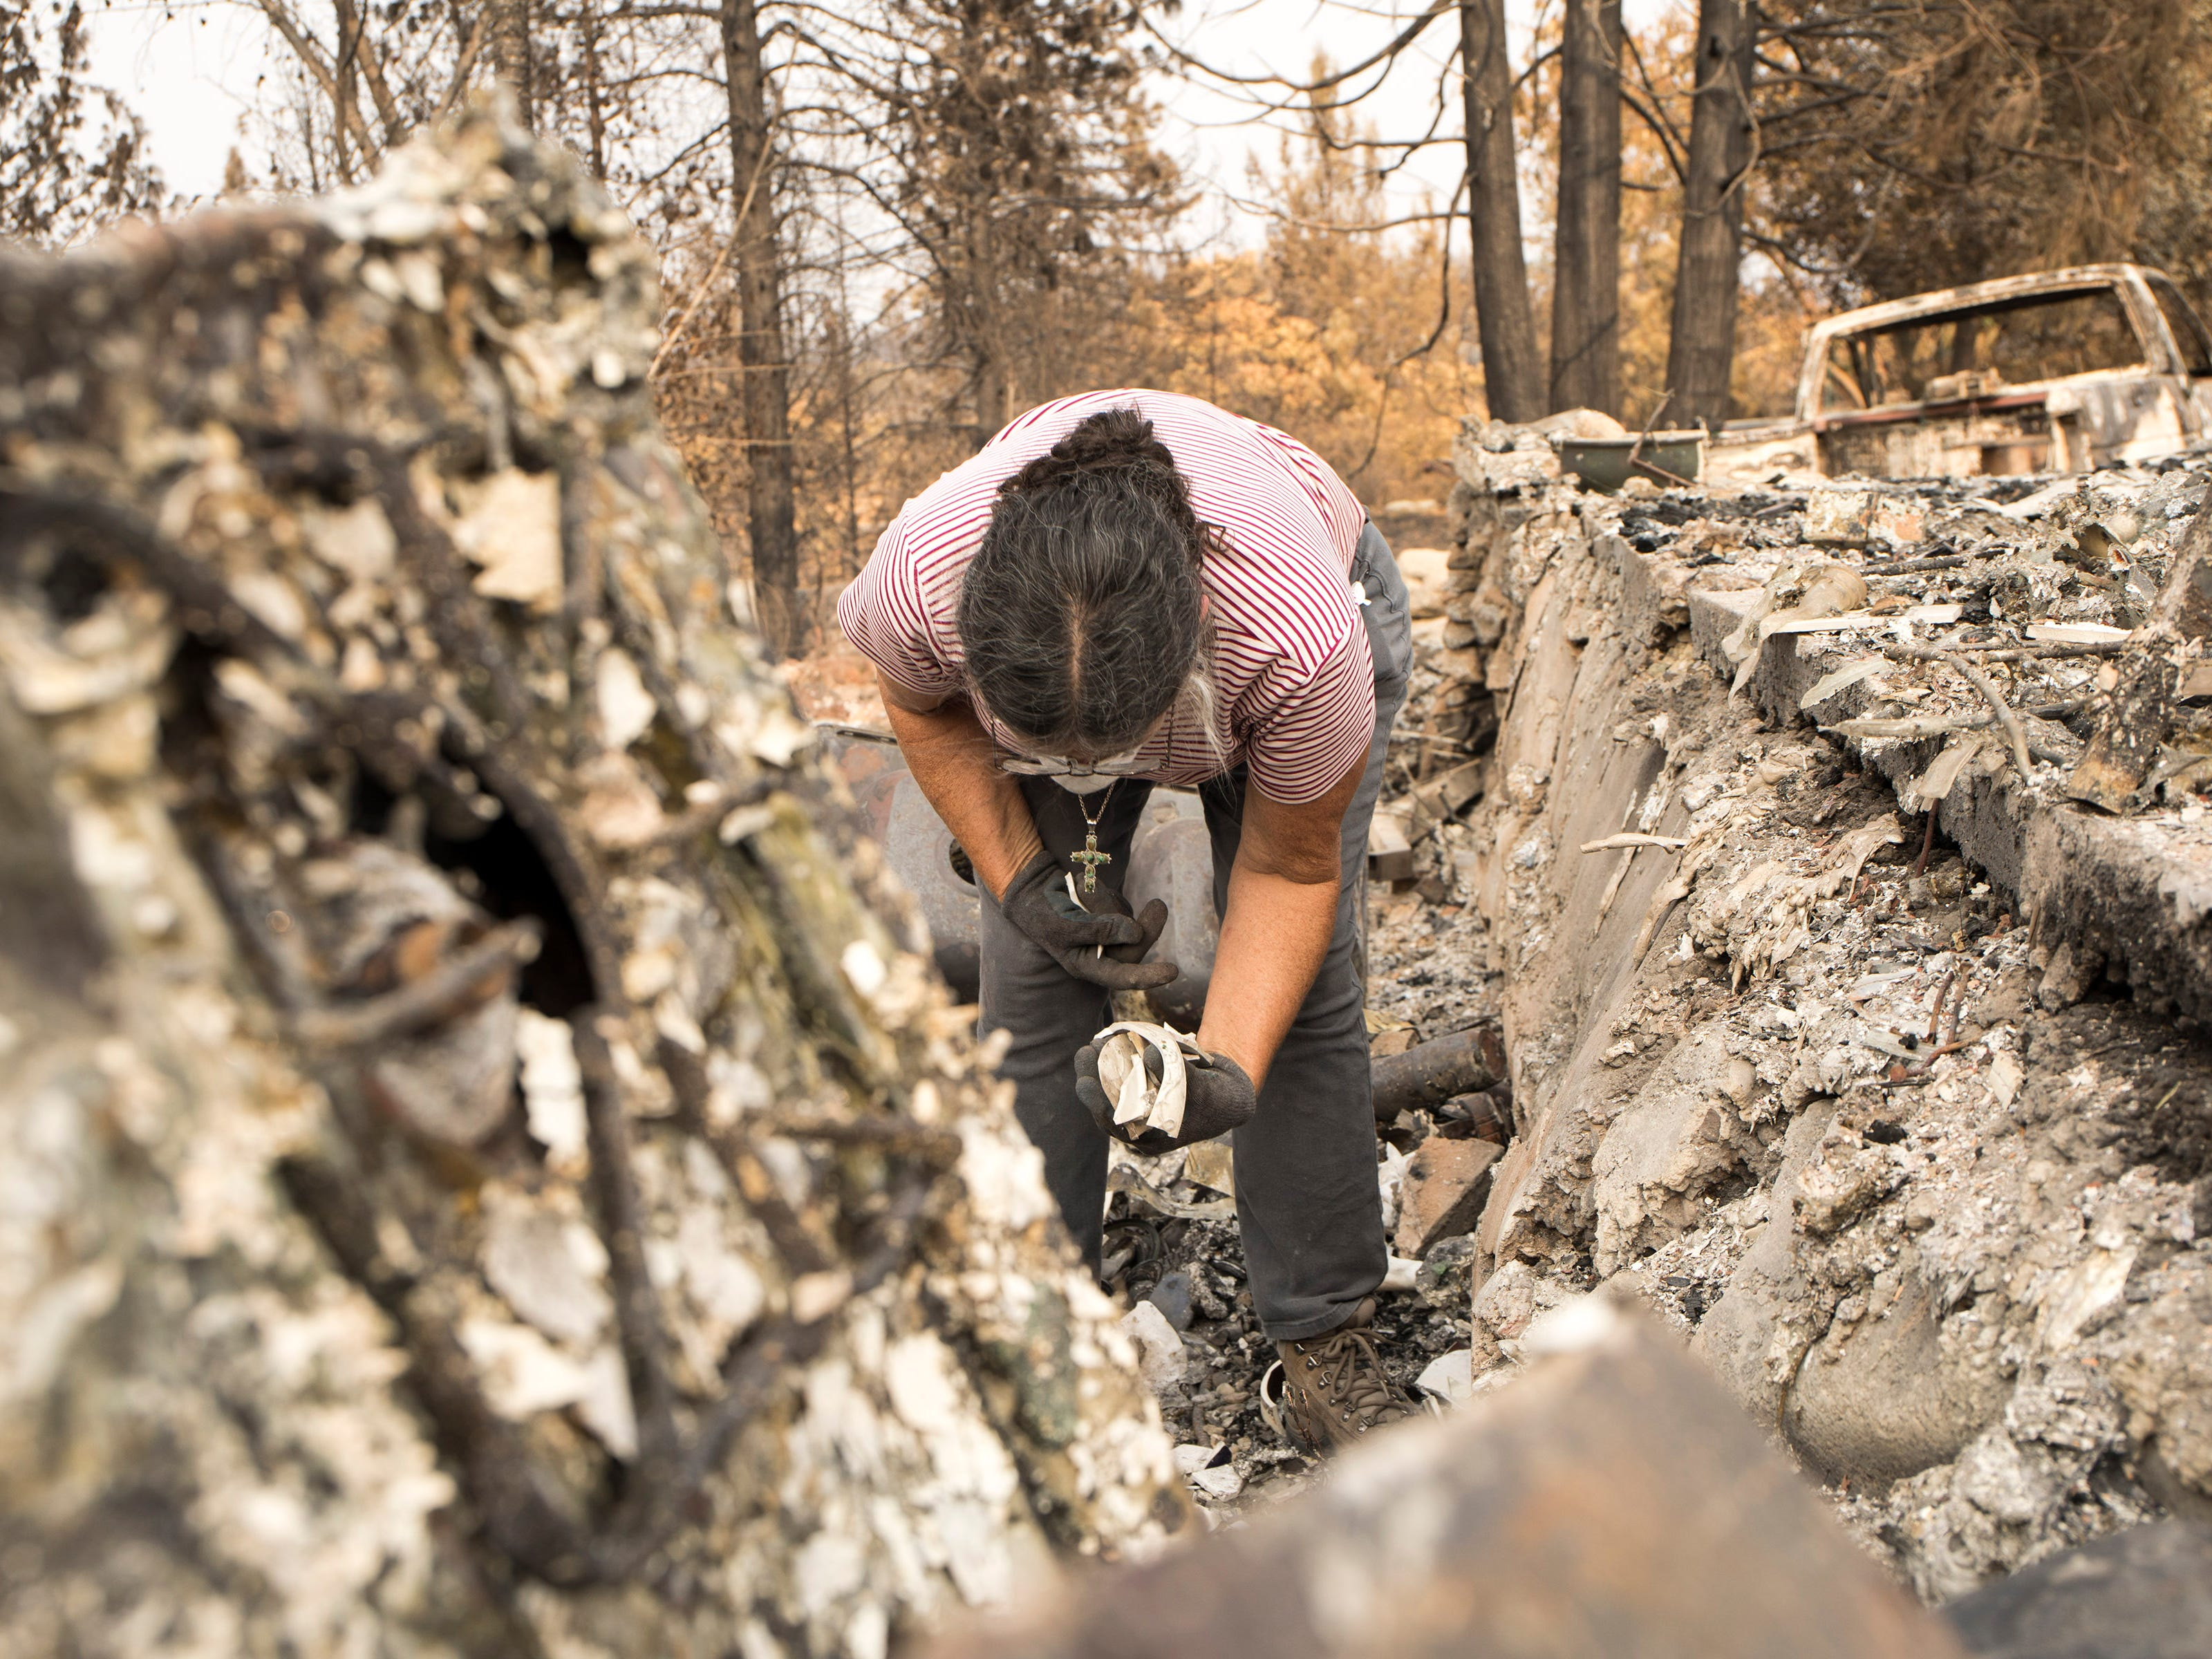 Marci Fernandes, 62 searches through the ashes of her home on Keswick Rd. near Tanstaafl Lane after the Carr fire in Keswick, Calif., Saturday, August 26, 2018.